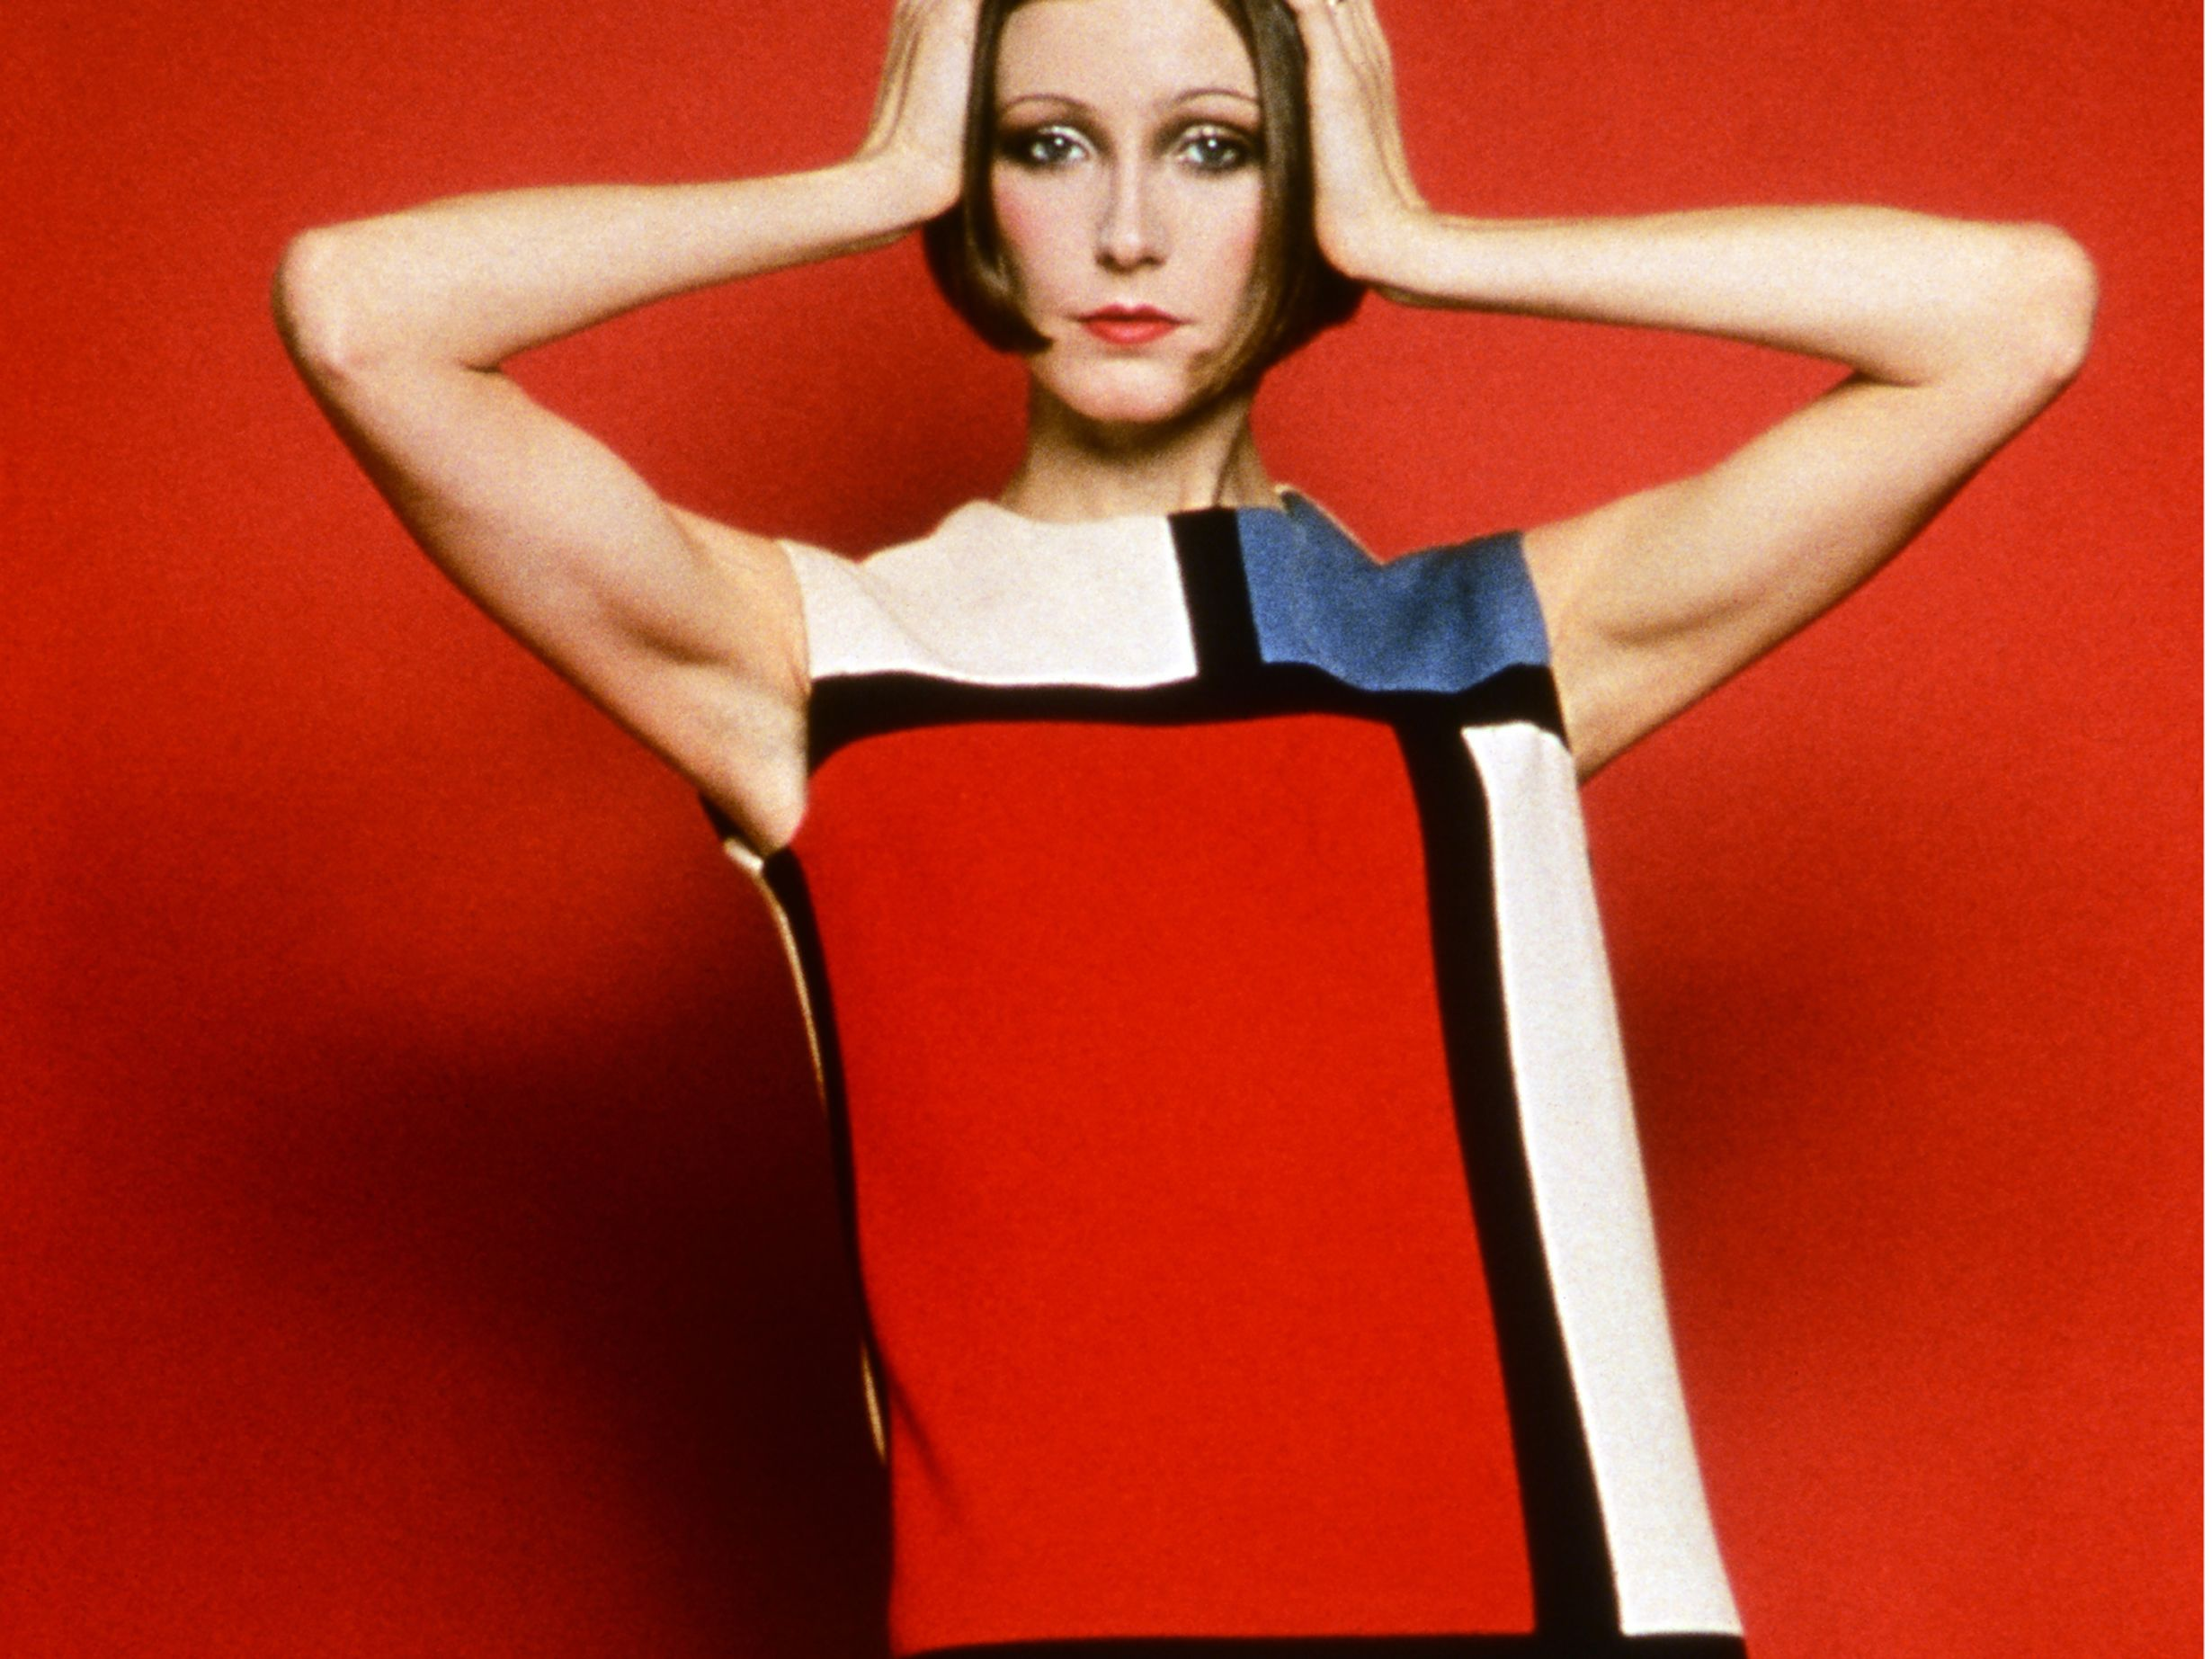 Cocktail dress worn by susan moncur homage to piet mondrian fw 65  1  xh1k6a